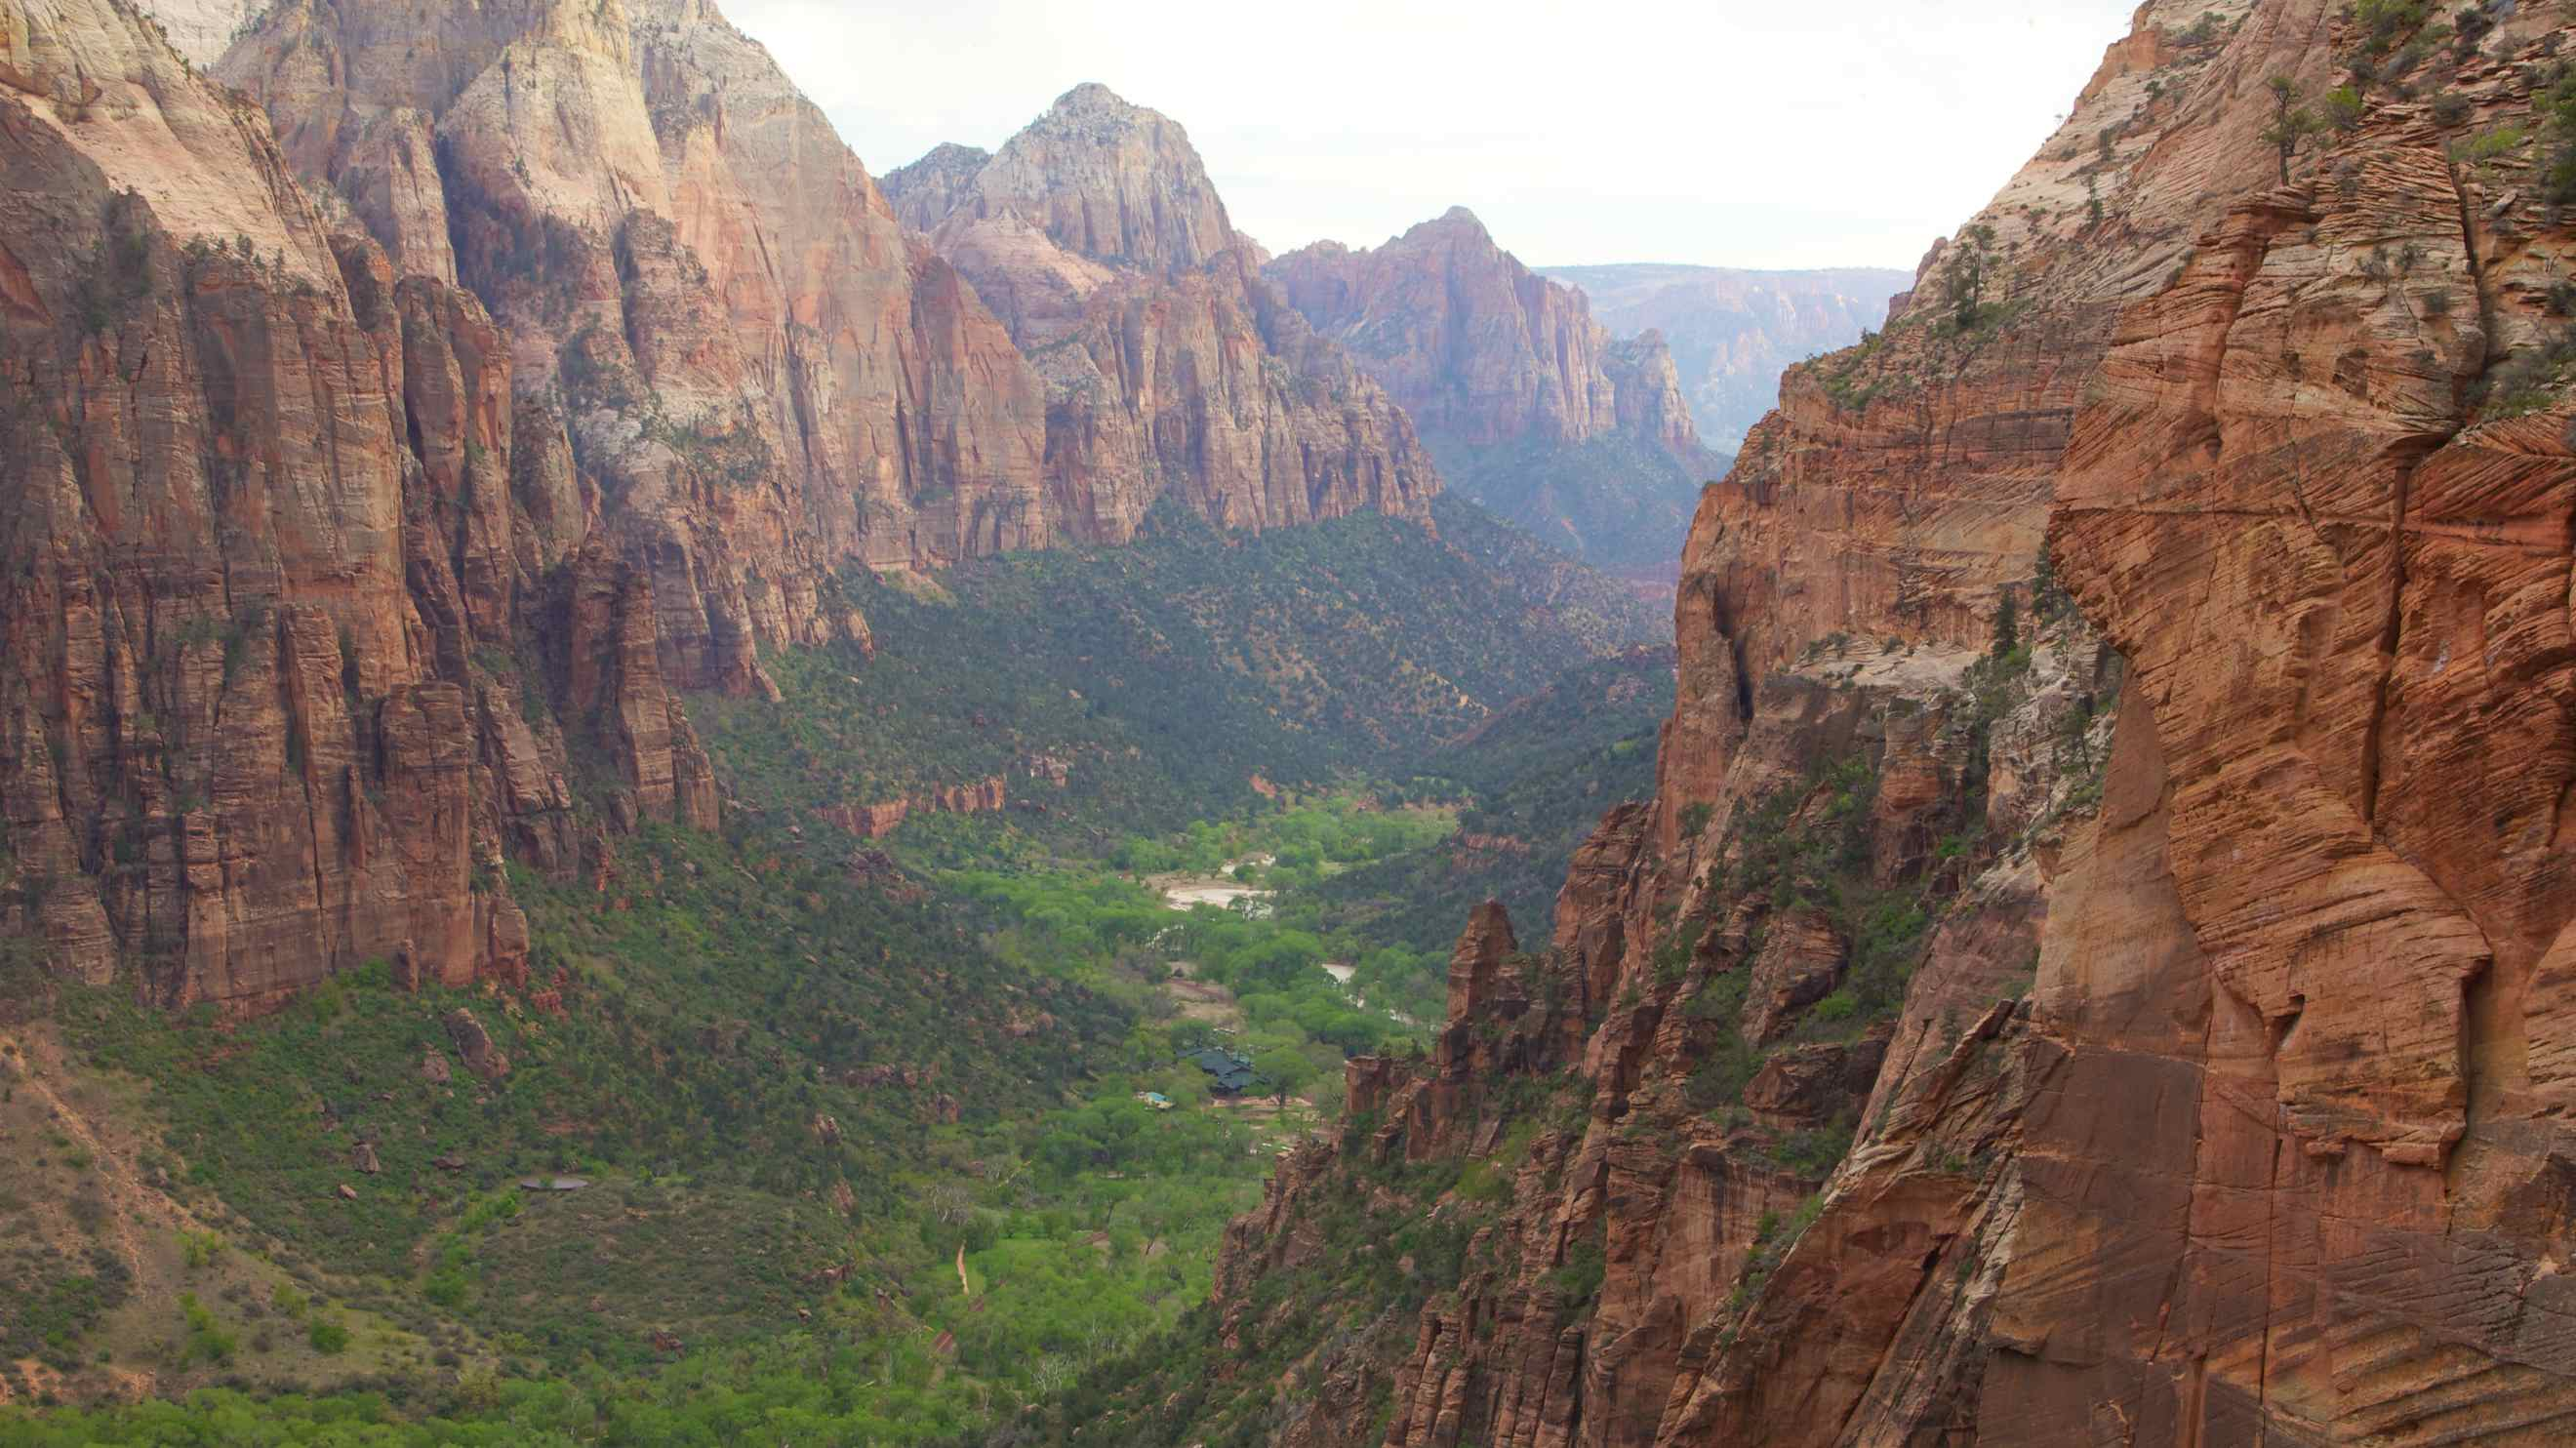 the 10 best hotels in zion national park, utah for 2019 | expedia